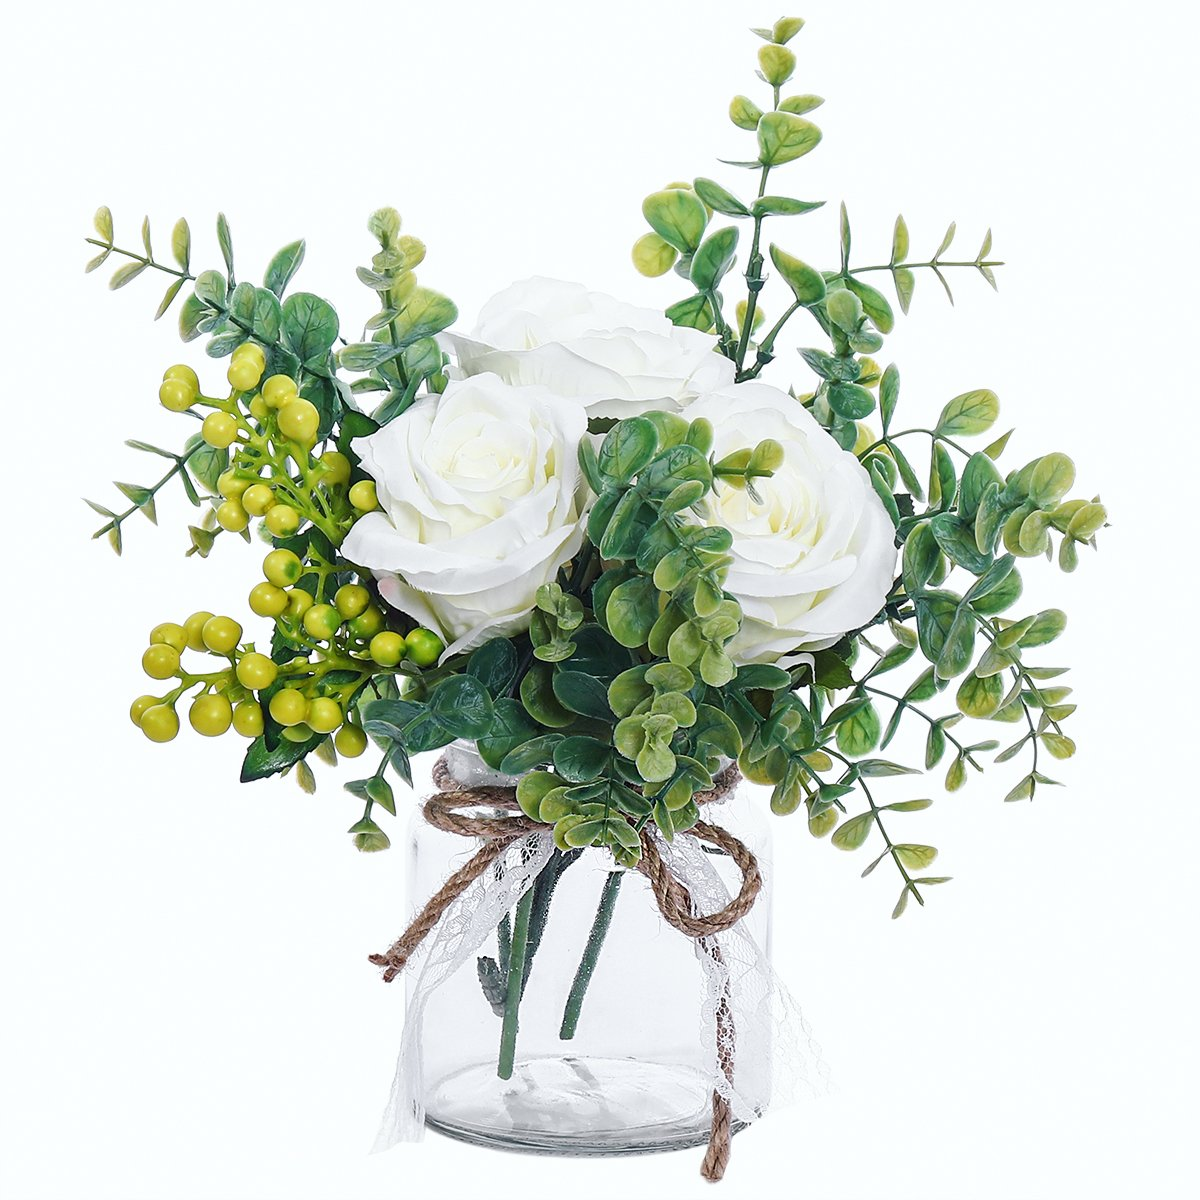 PARTY JOY Vintage Artificial Silk Rose EucalyptusFlower Bouquet Wedding Party Home Decor,(1, Champagne rose & eucalyptus) XBMGYJL-XB-1